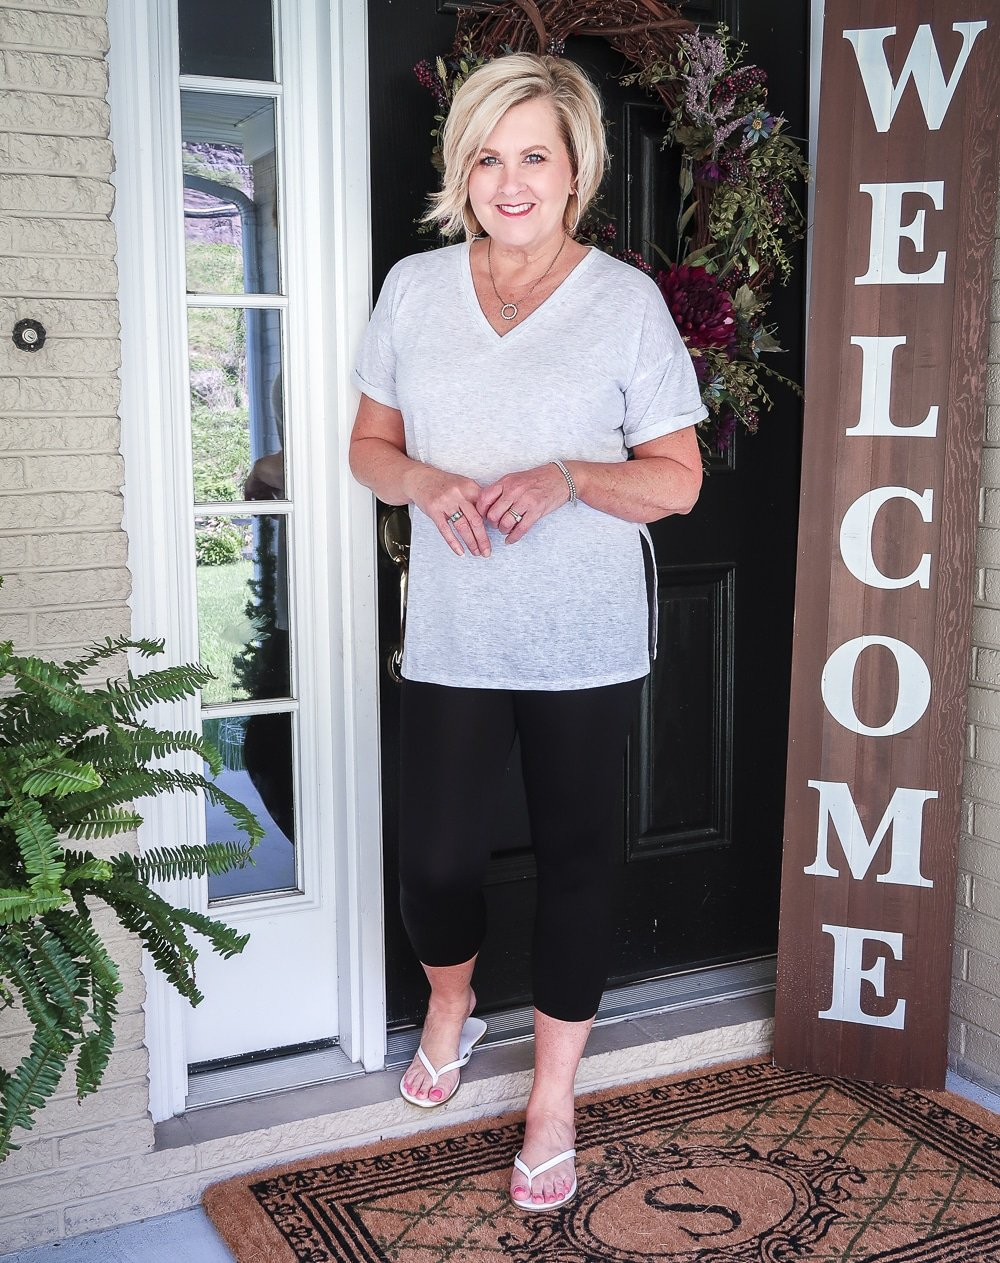 FASHION BLOGGER 50 IS NOT OLD IS WEARING A LIGHT GRAY TUNIC TOP AND BLACK CAPRI LEGGINGS WITH A PAIR OF WHITE FLIP FLOPS